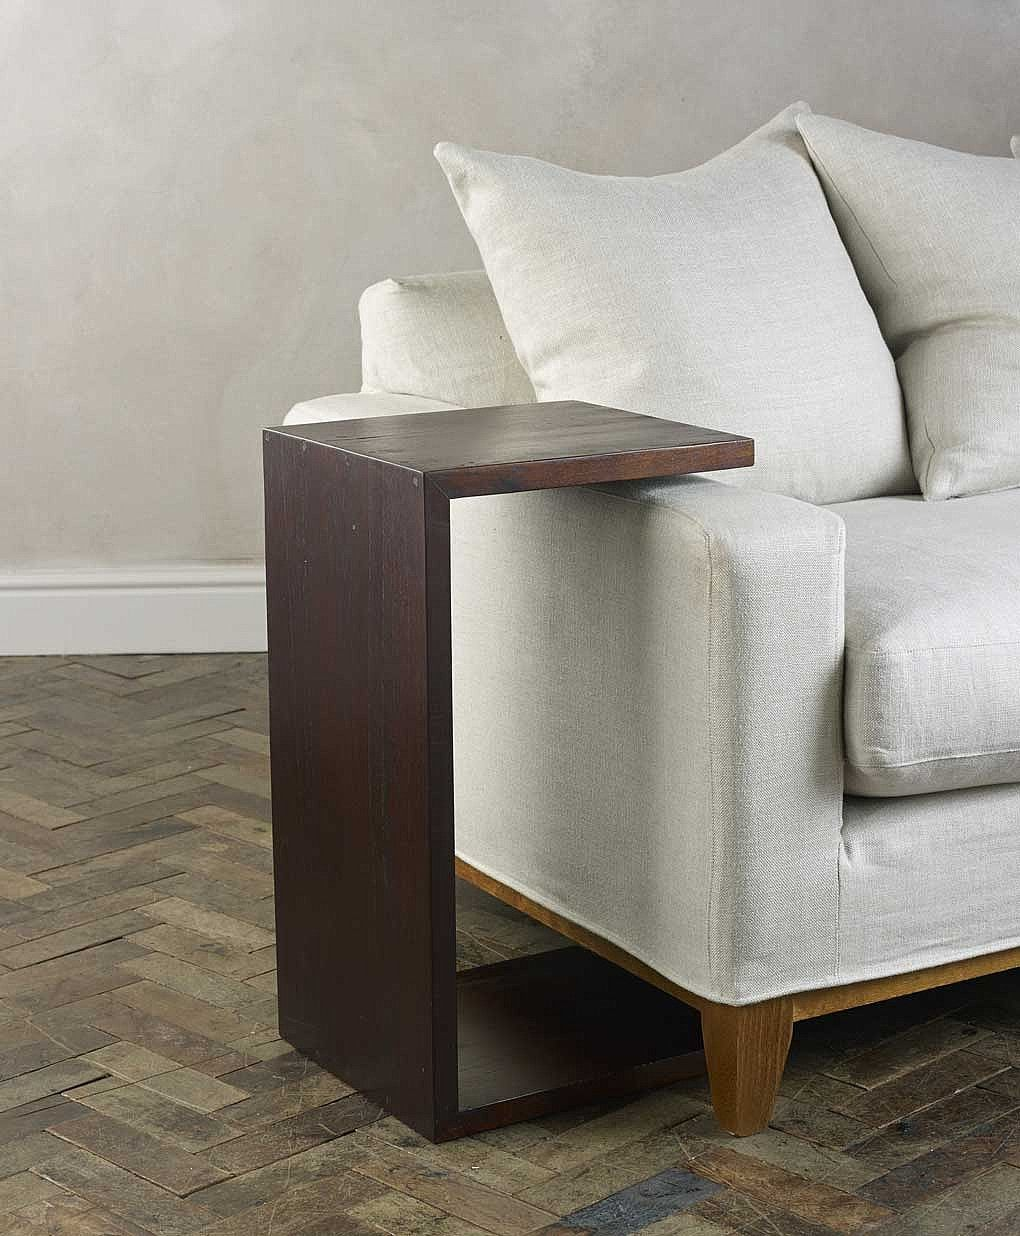 Seba over arm side table lombok arms and shapes for Sofa side table designs